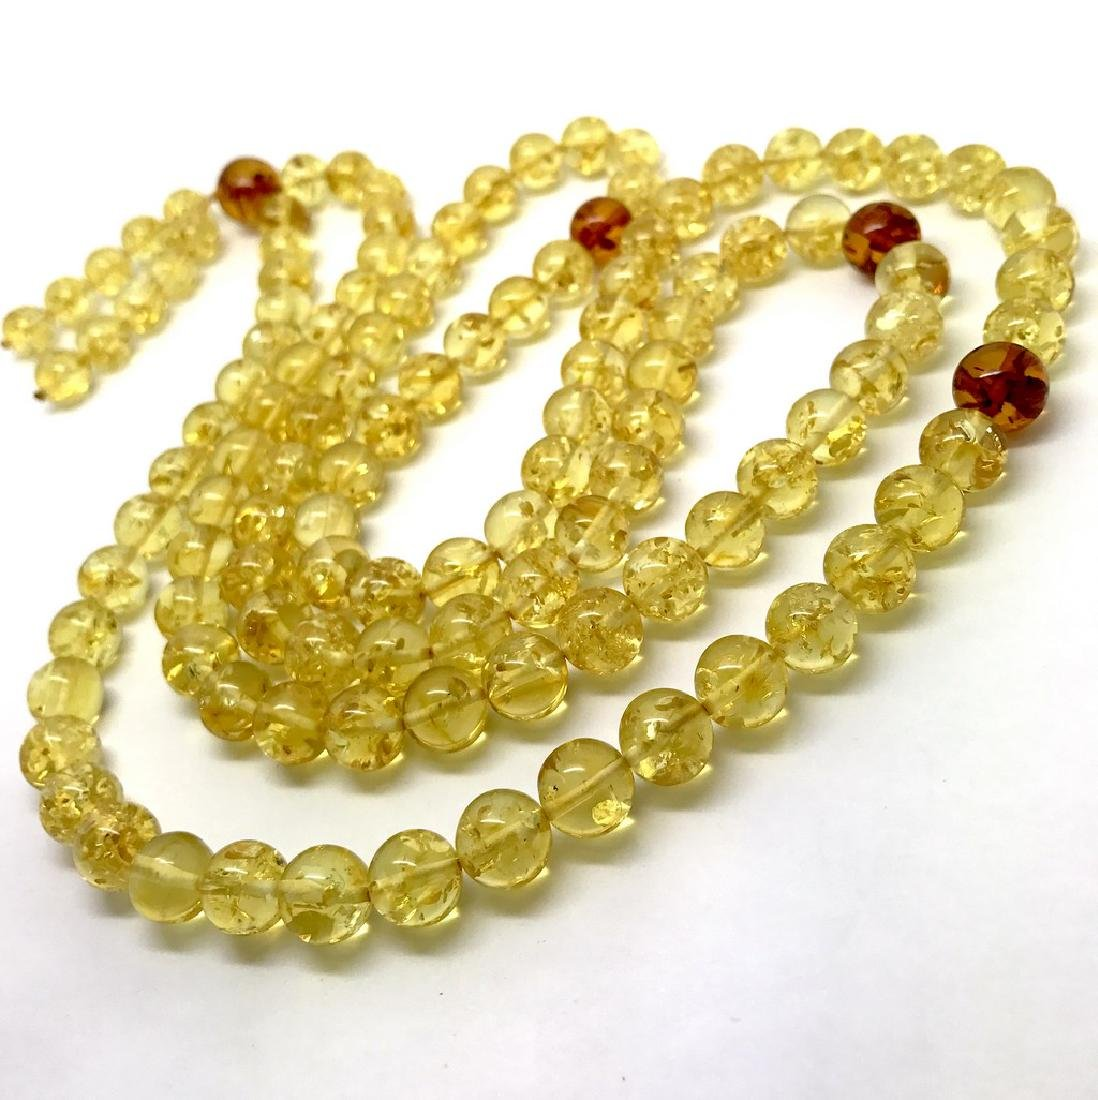 Japa mala luck necklace Baltic amber beads lemon&cognac - 2